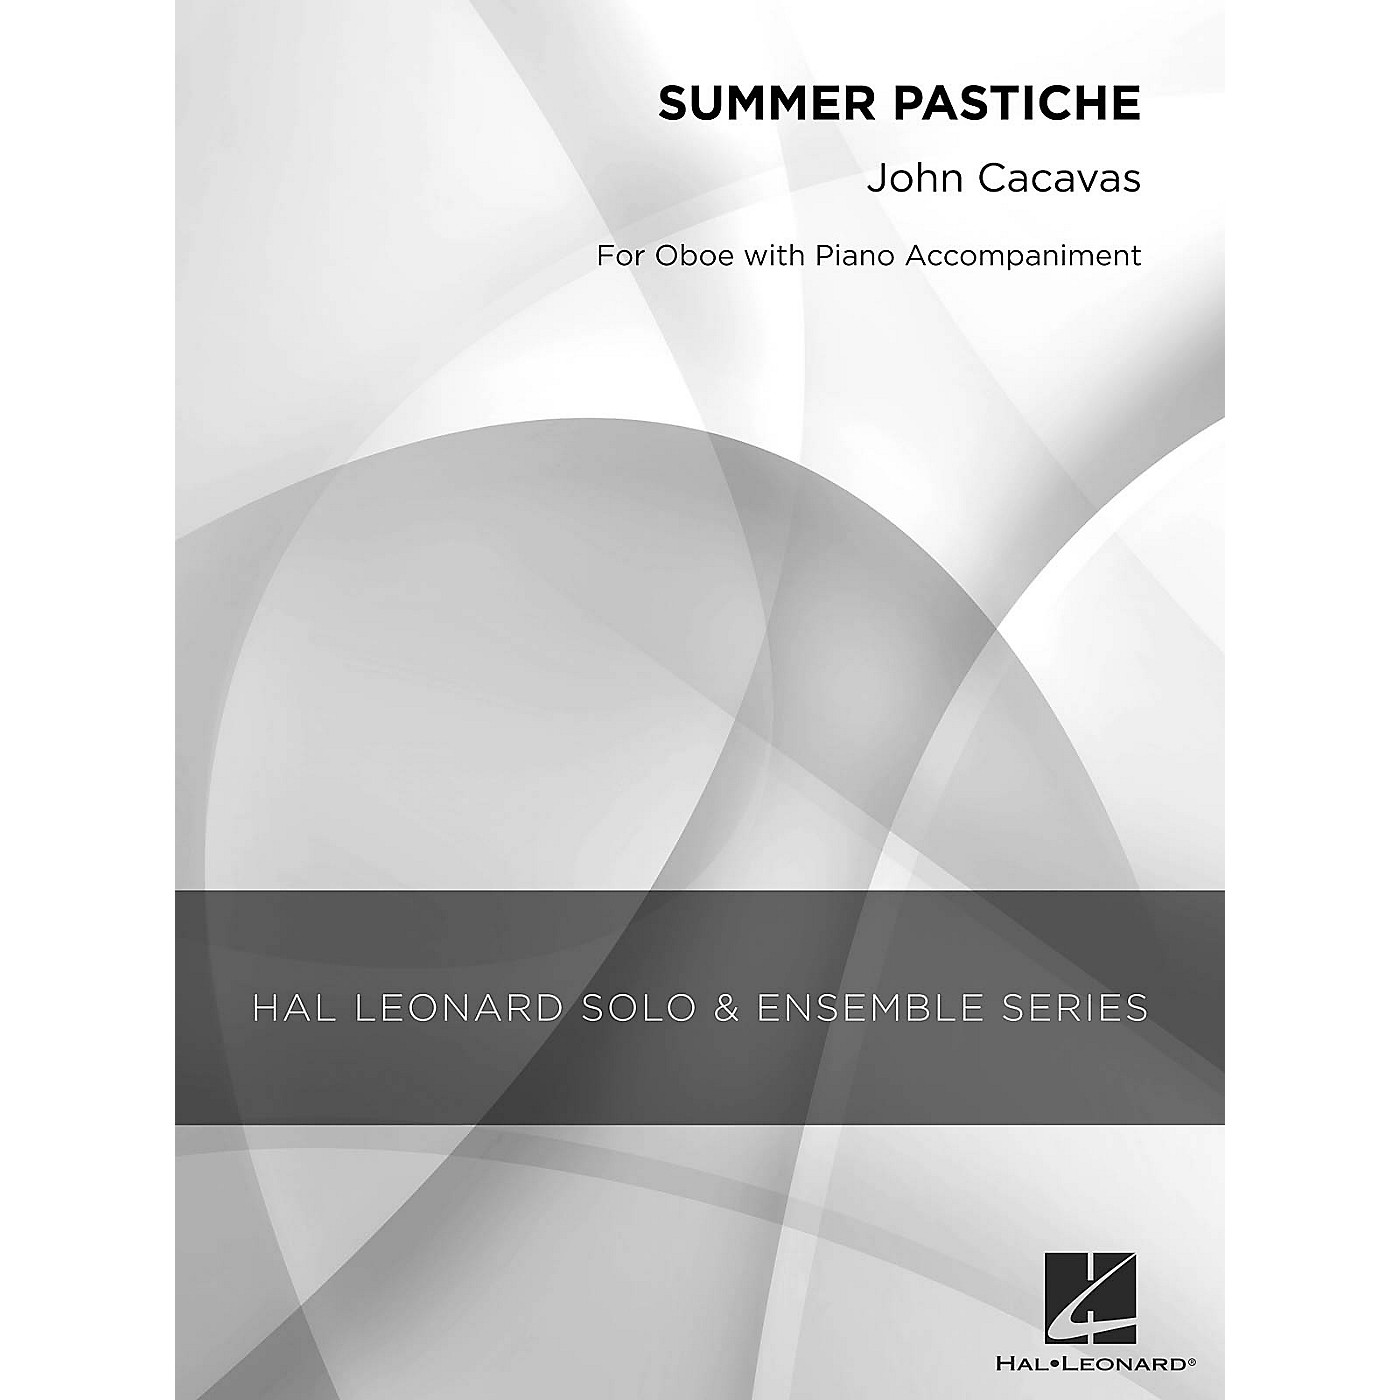 Hal Leonard Summer Pastiche (Grade 2.5 Oboe Solo) Concert Band Level 2.5 Composed by John Cacavas thumbnail